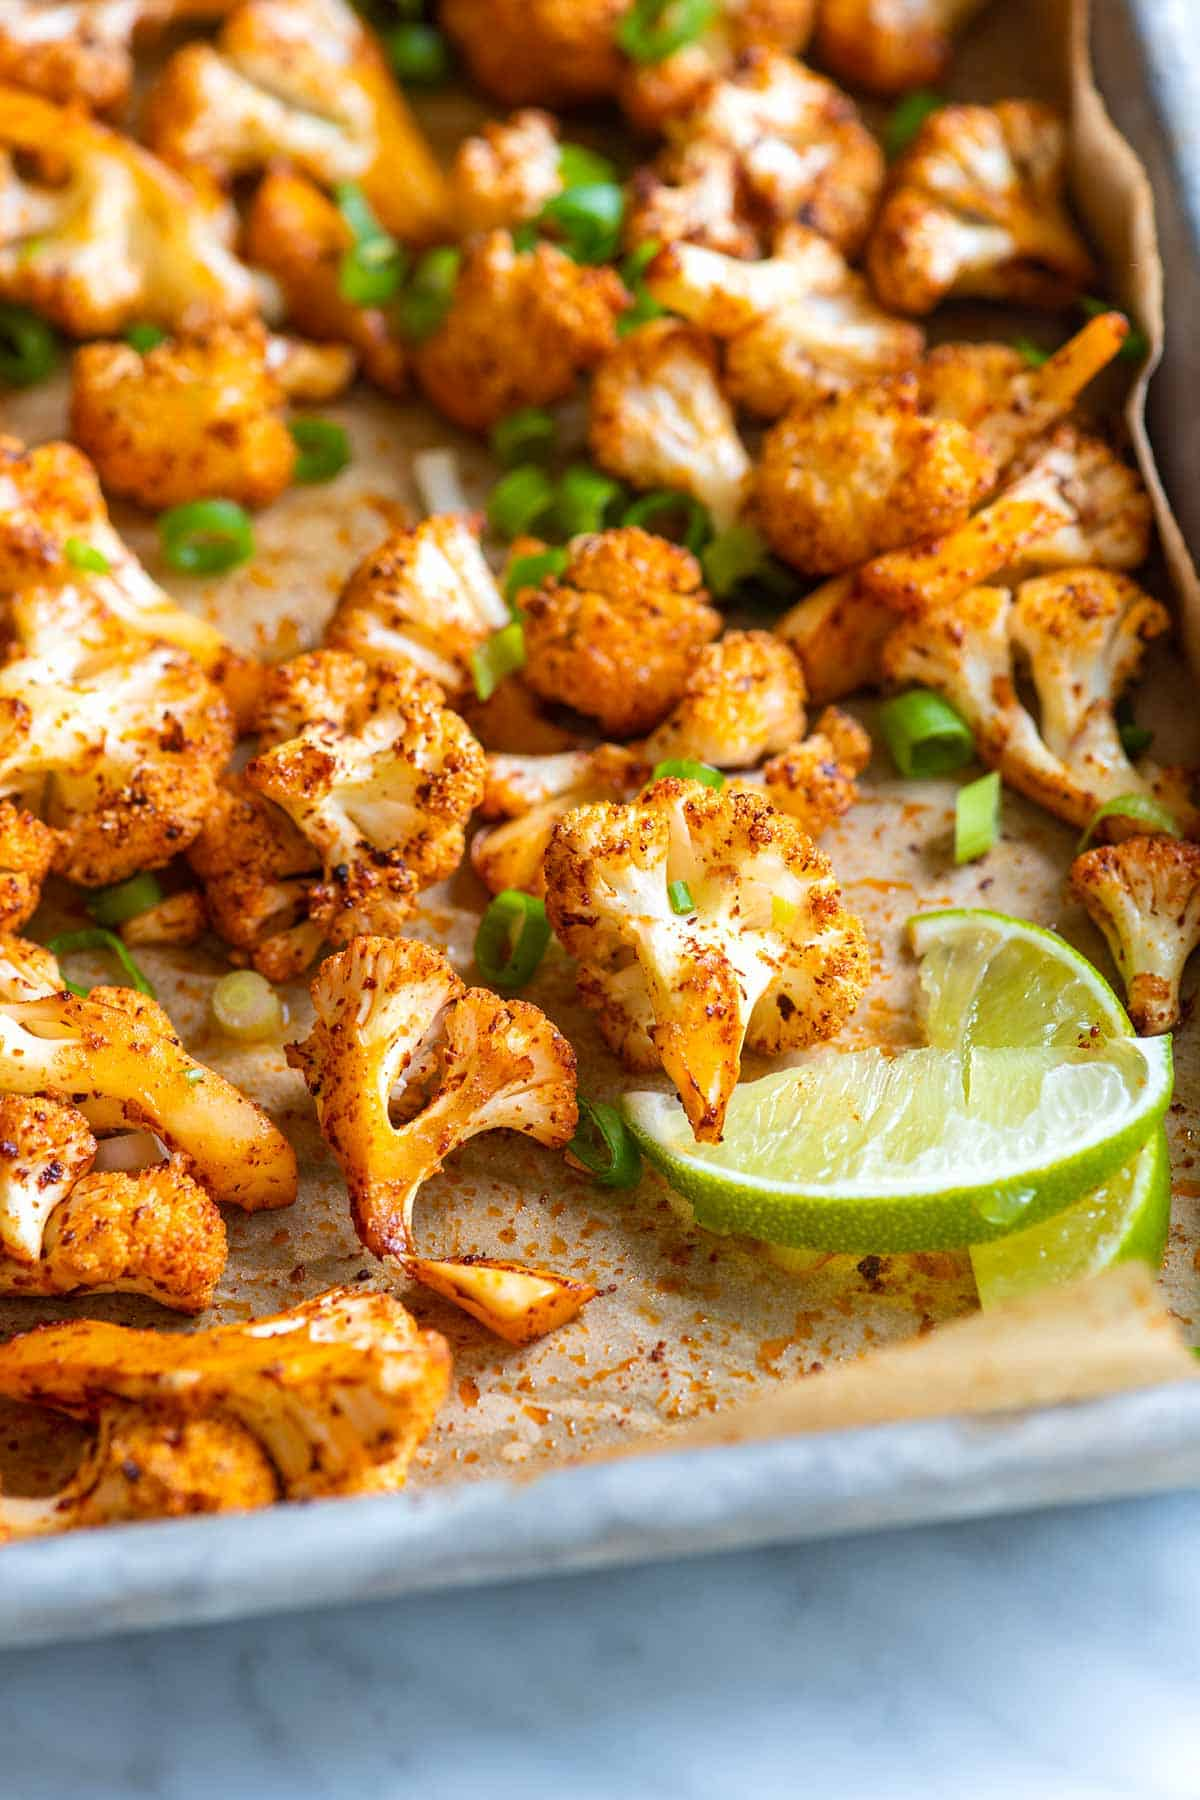 Our chili lime roasted cauliflower recipe combines perfectly roasted and browned cauliflower, ultra-flavorful spices, and fresh lime juice for an almost addictive cauliflower recipe!